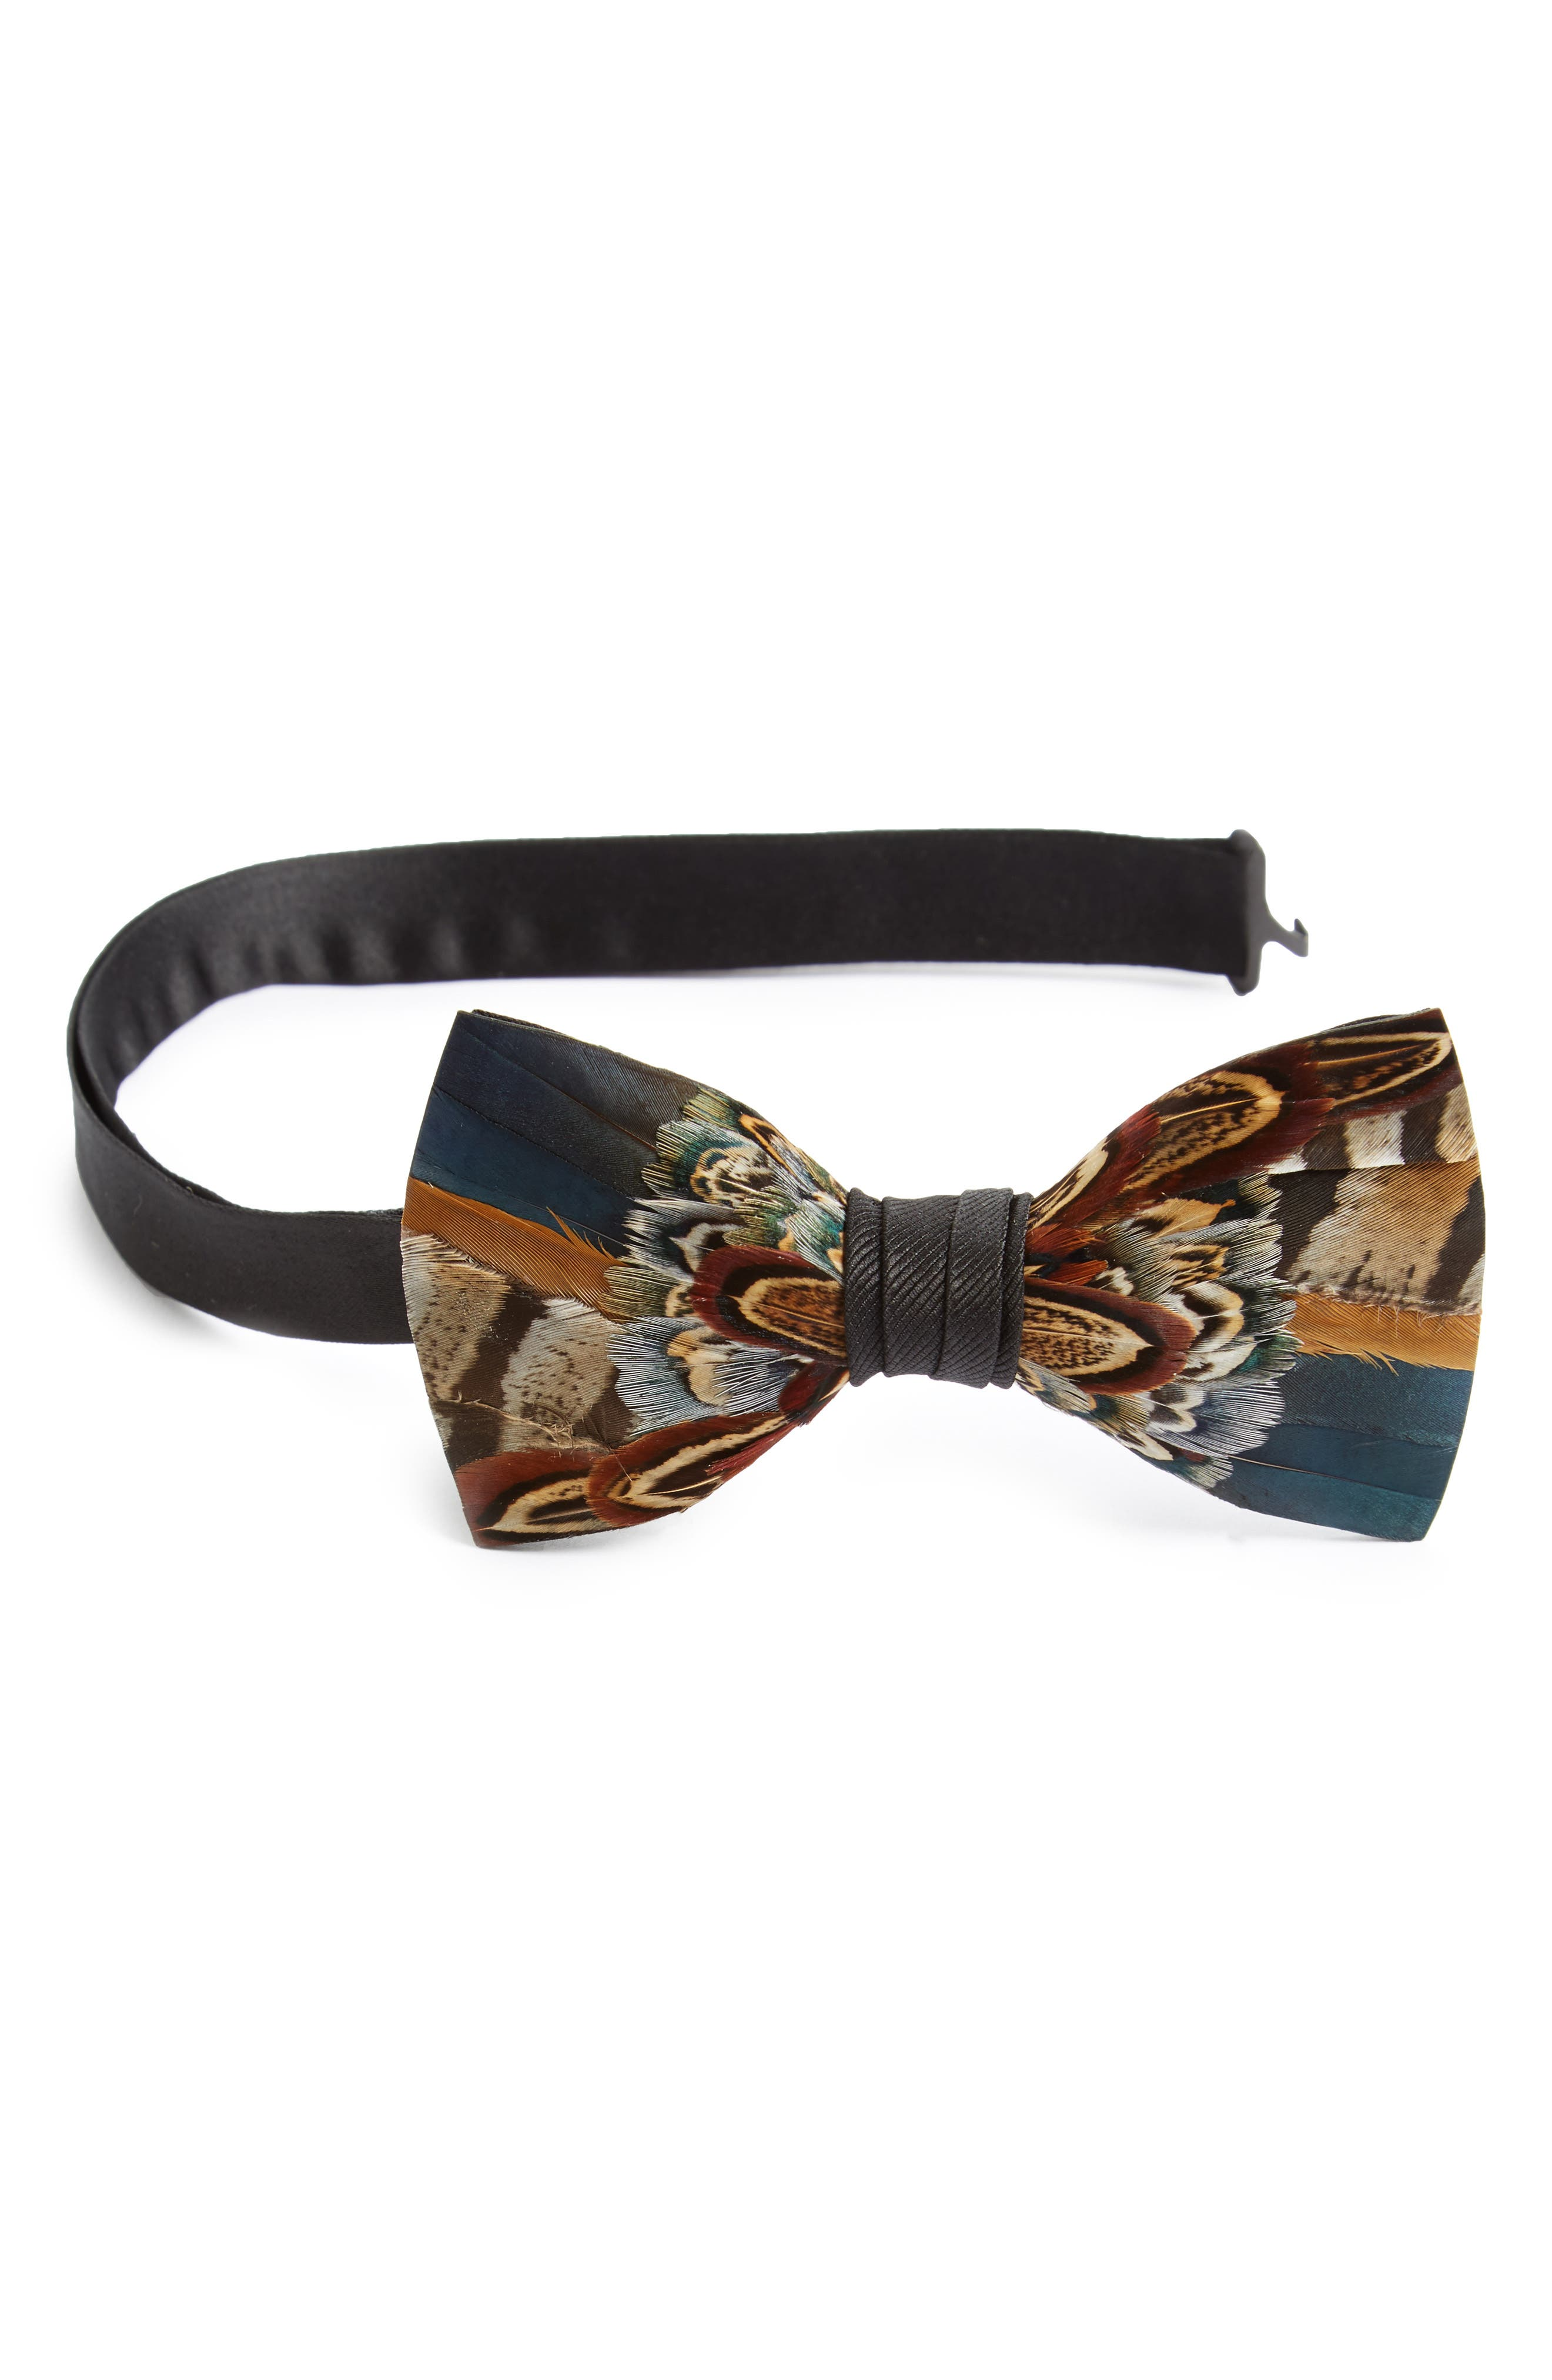 Pollock Feather Bow Tie,                             Main thumbnail 1, color,                             BLUE/ BROWN